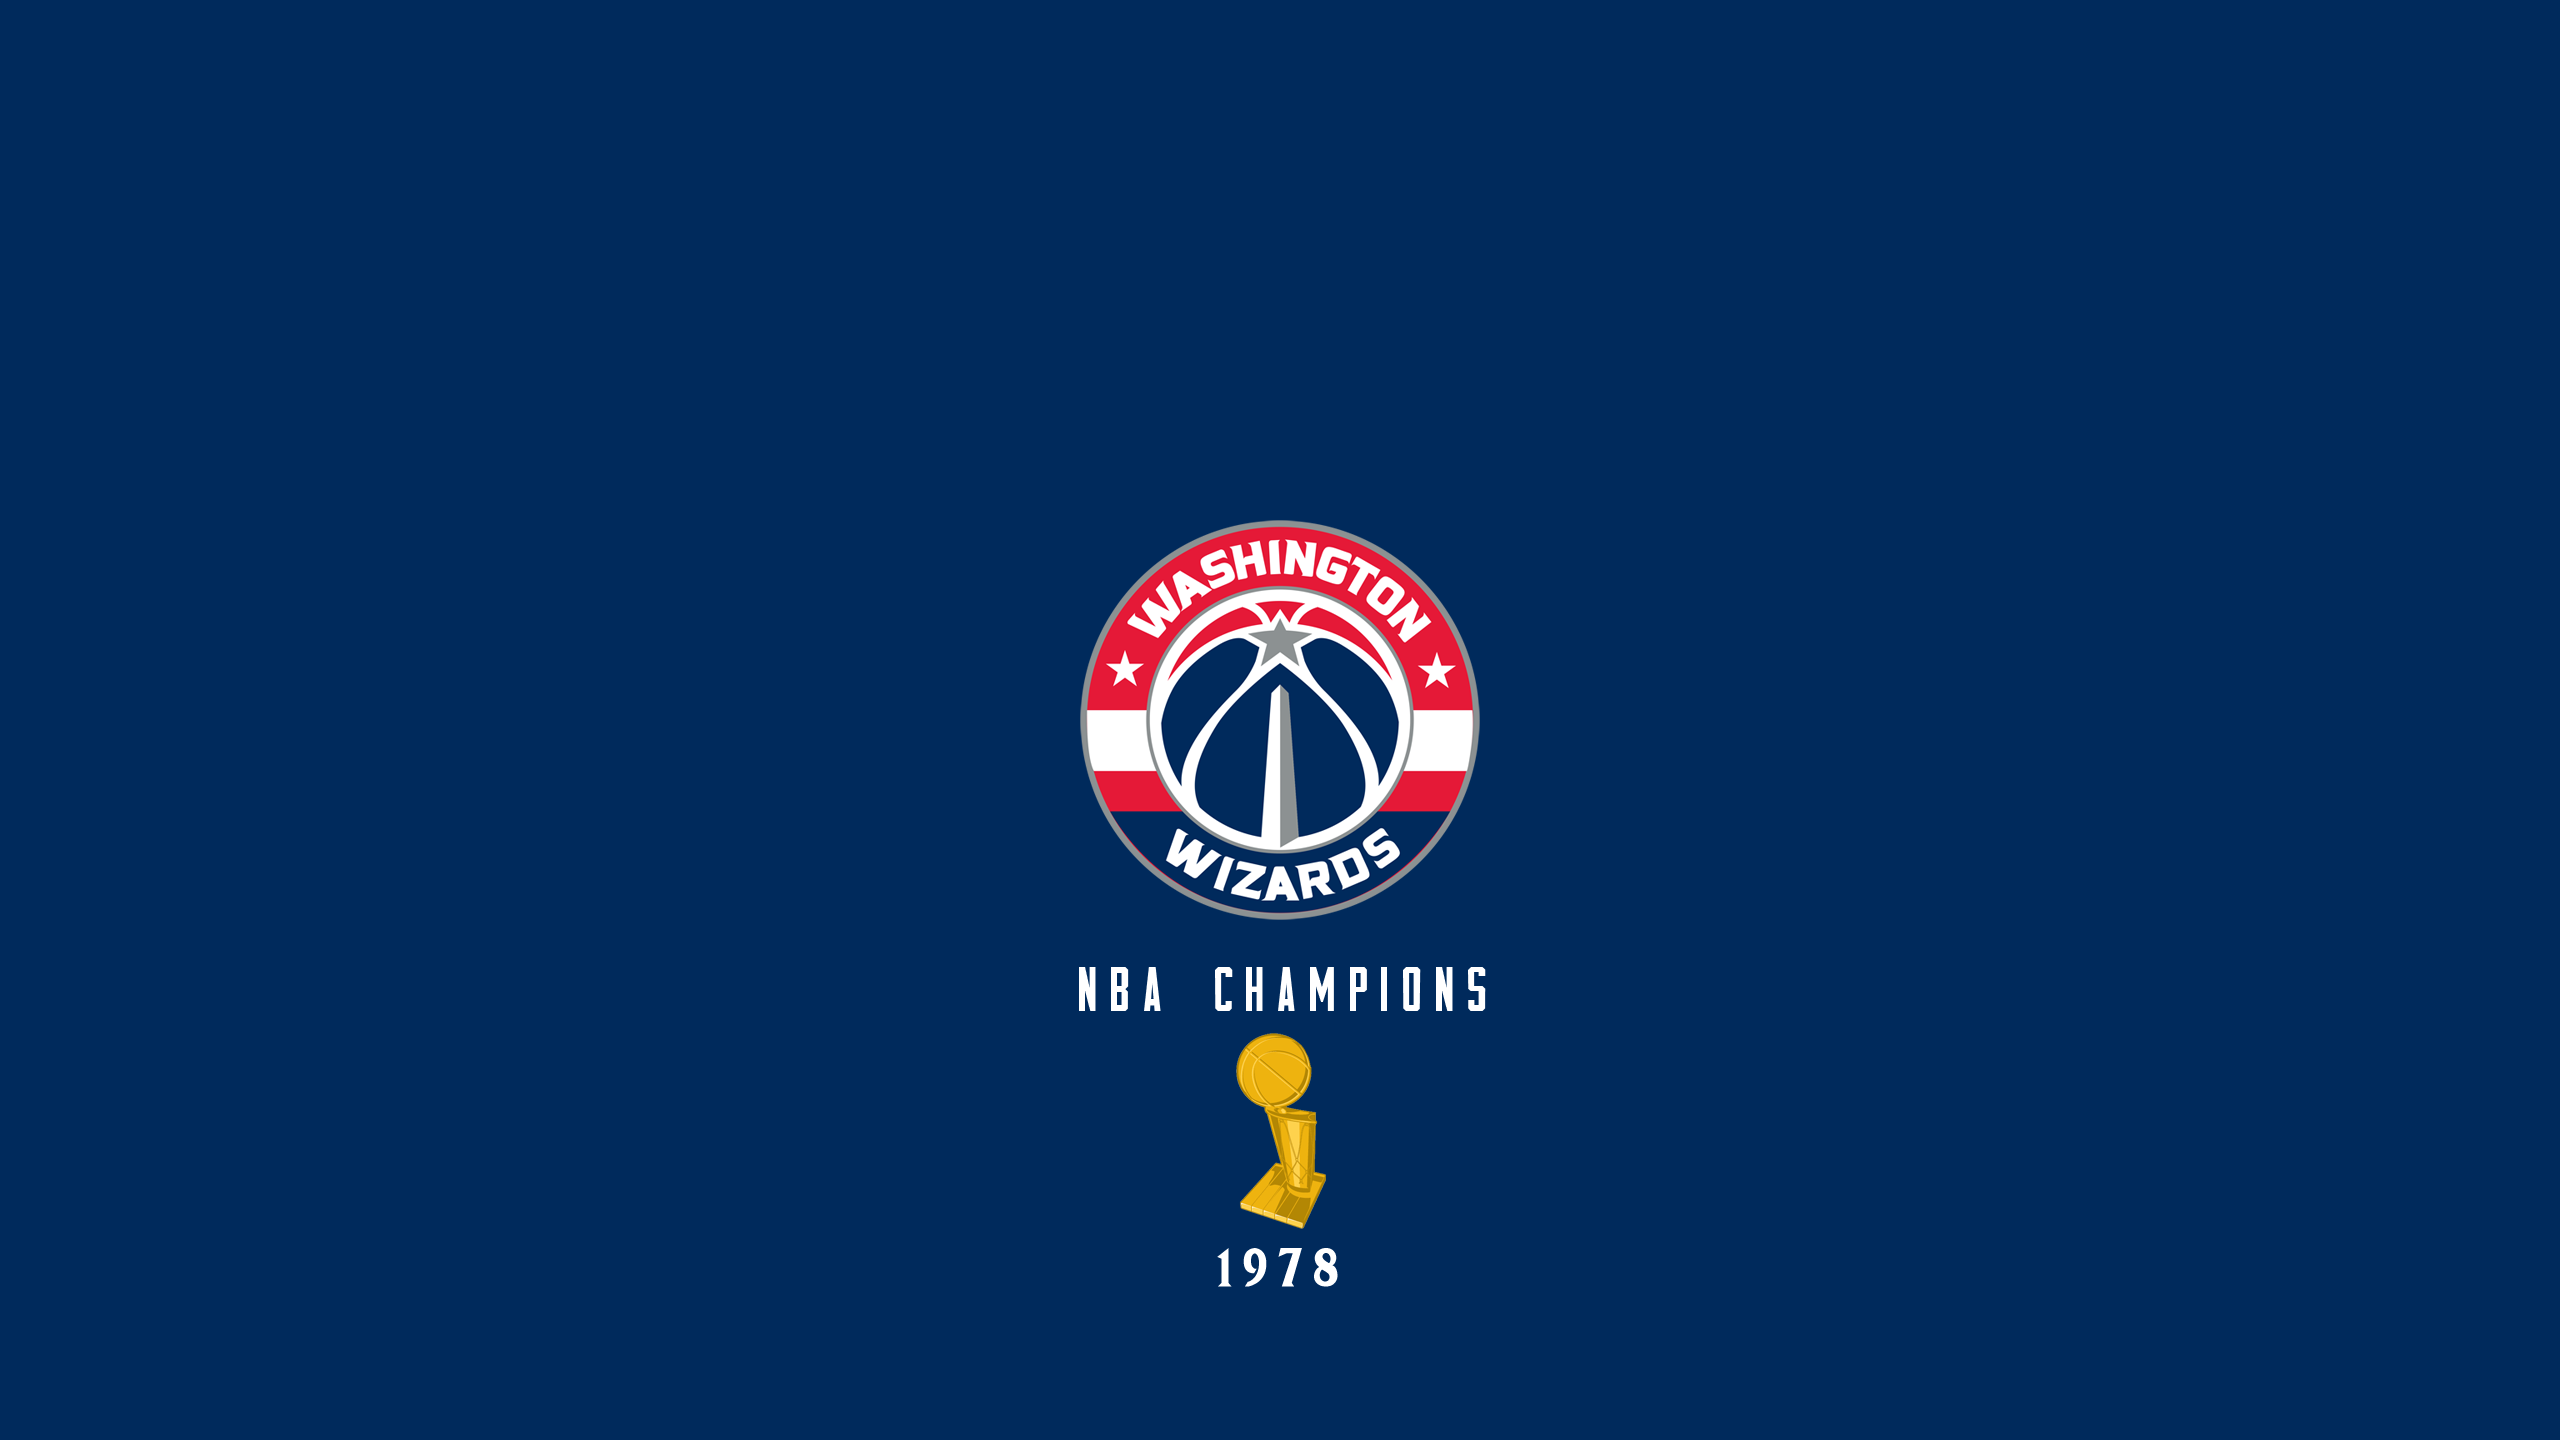 Washington Wizards - NBA Champs